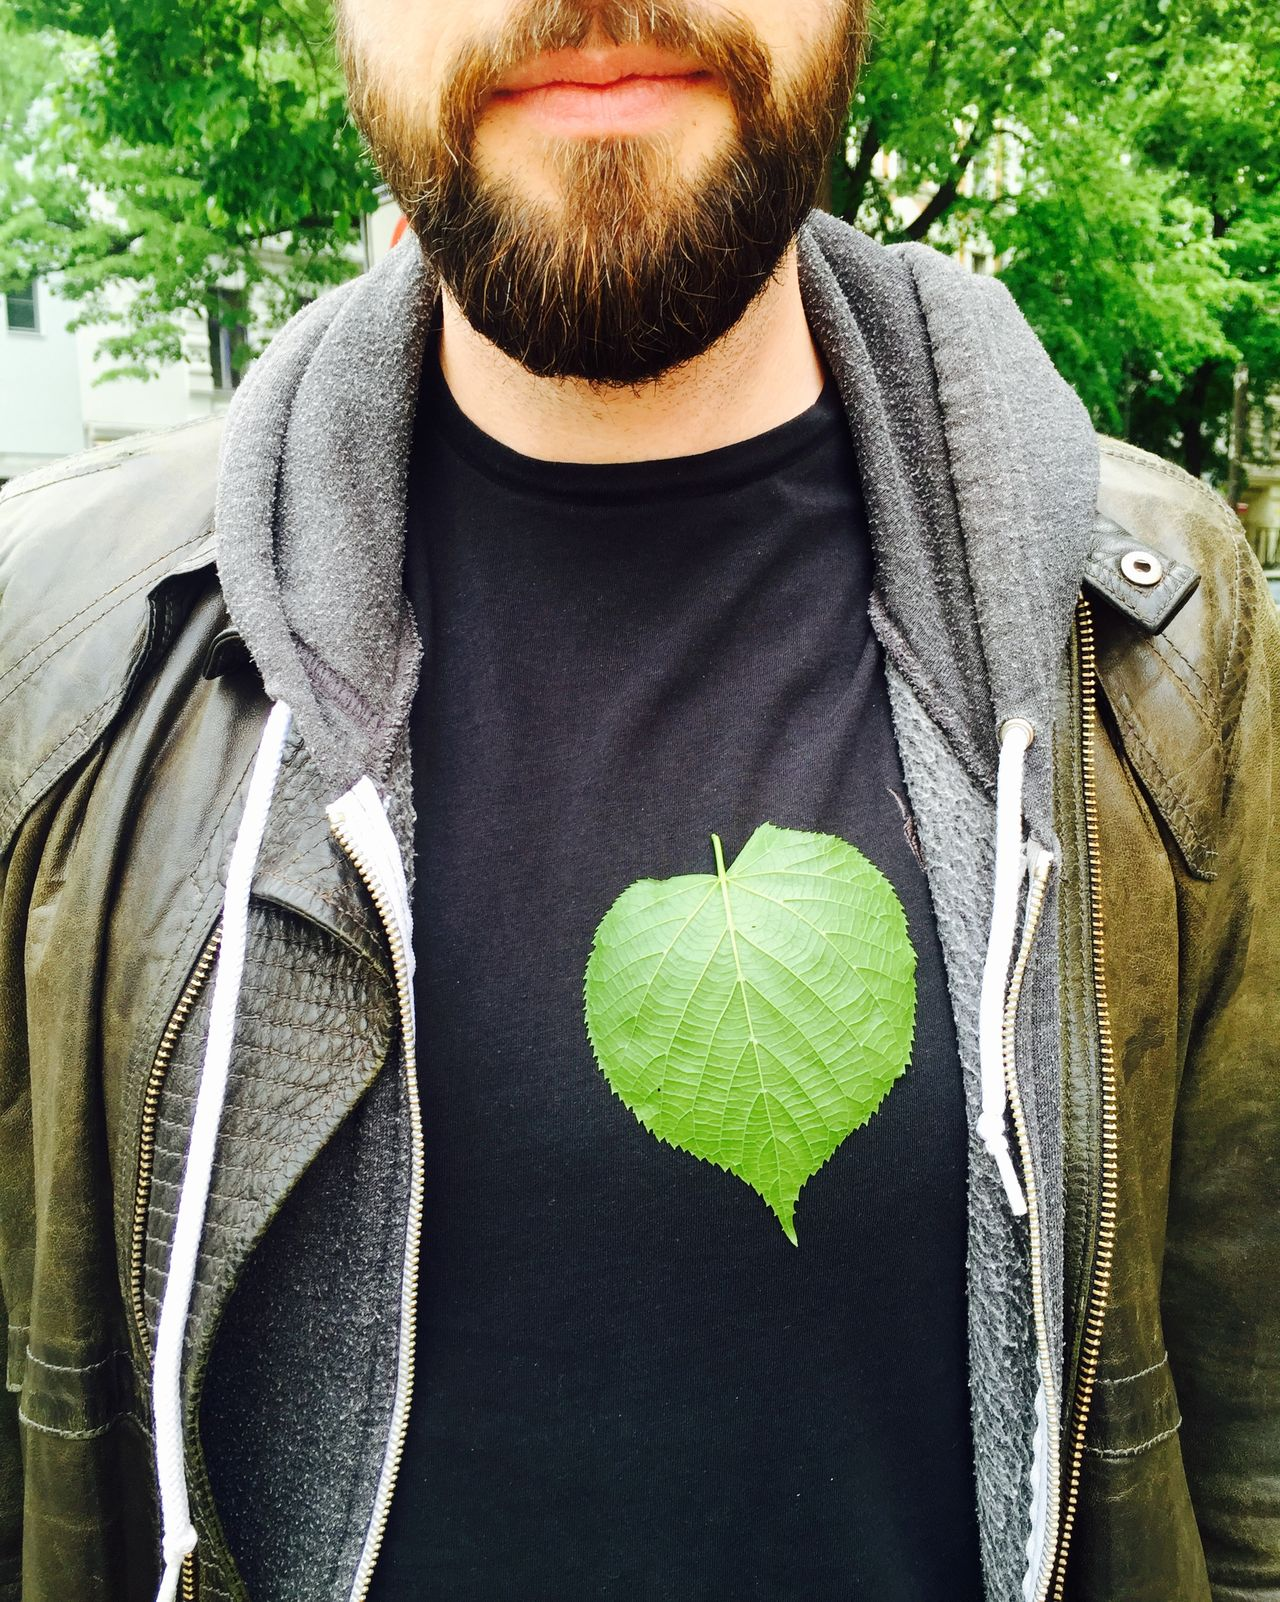 Green heart Beard Casual Clothing Close-up Day Enviroment Freshness Front View Green Green Color Green Heart  Healthy Eating Healthy Lifestyle Heart Hipster Leaf Lifestyles Men Nature One Person Outdoors People Real People Vegan Vegetarian Food Young Adult